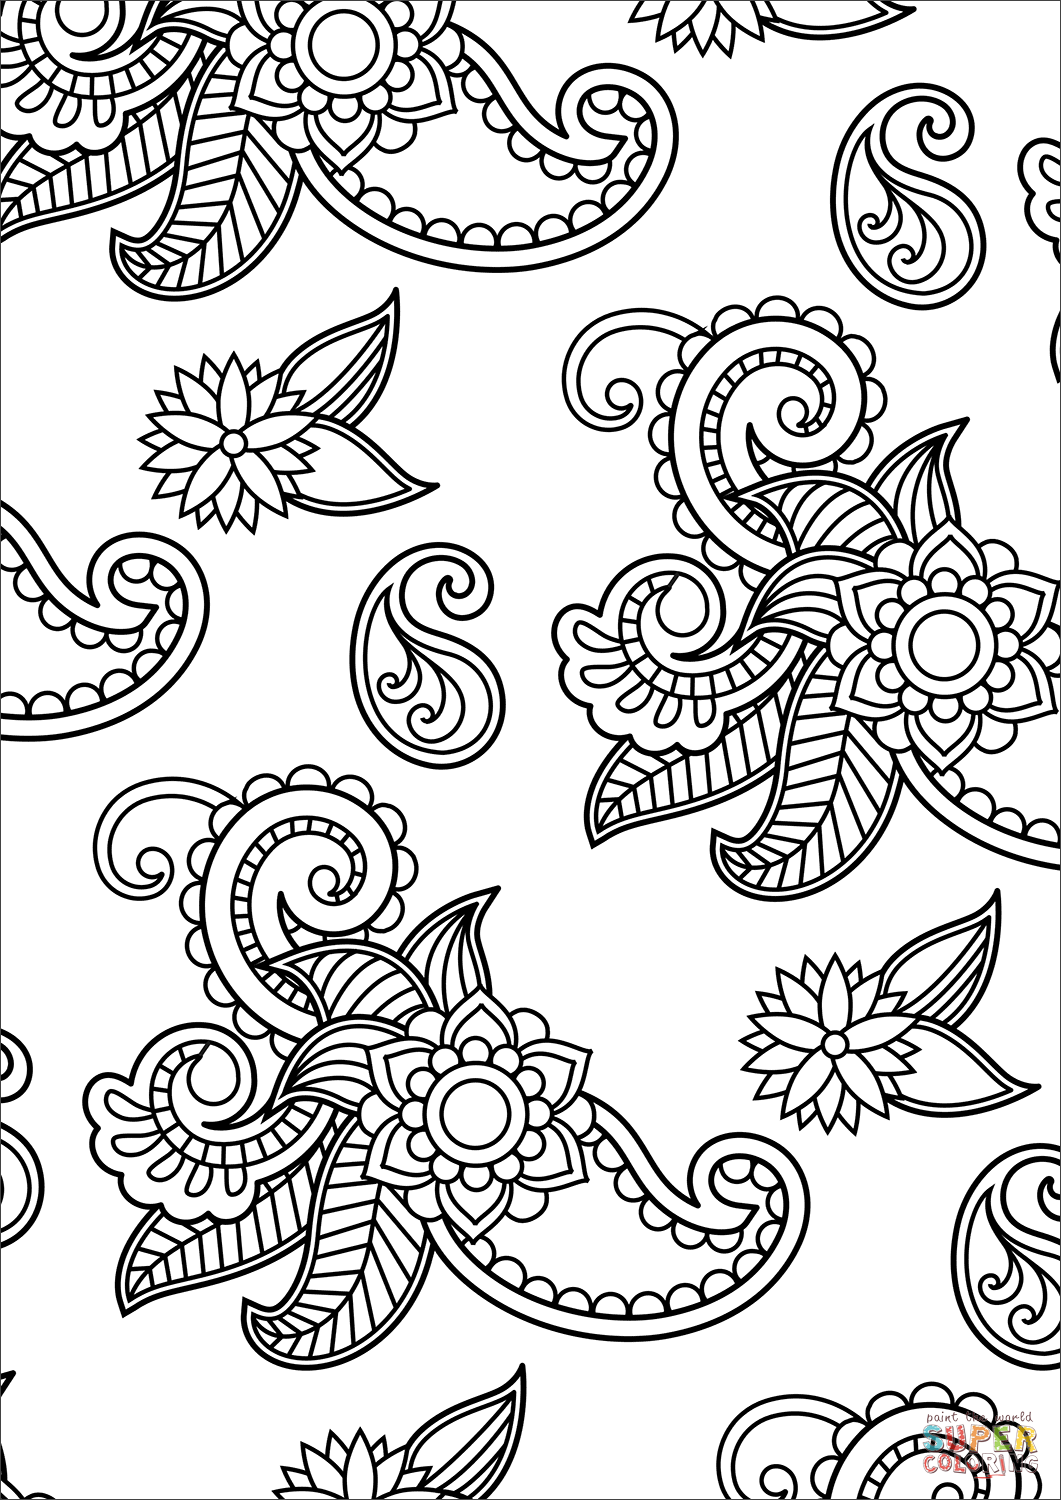 paisley print coloring pages easy paisley coloring pages at getdrawings free download print pages paisley coloring